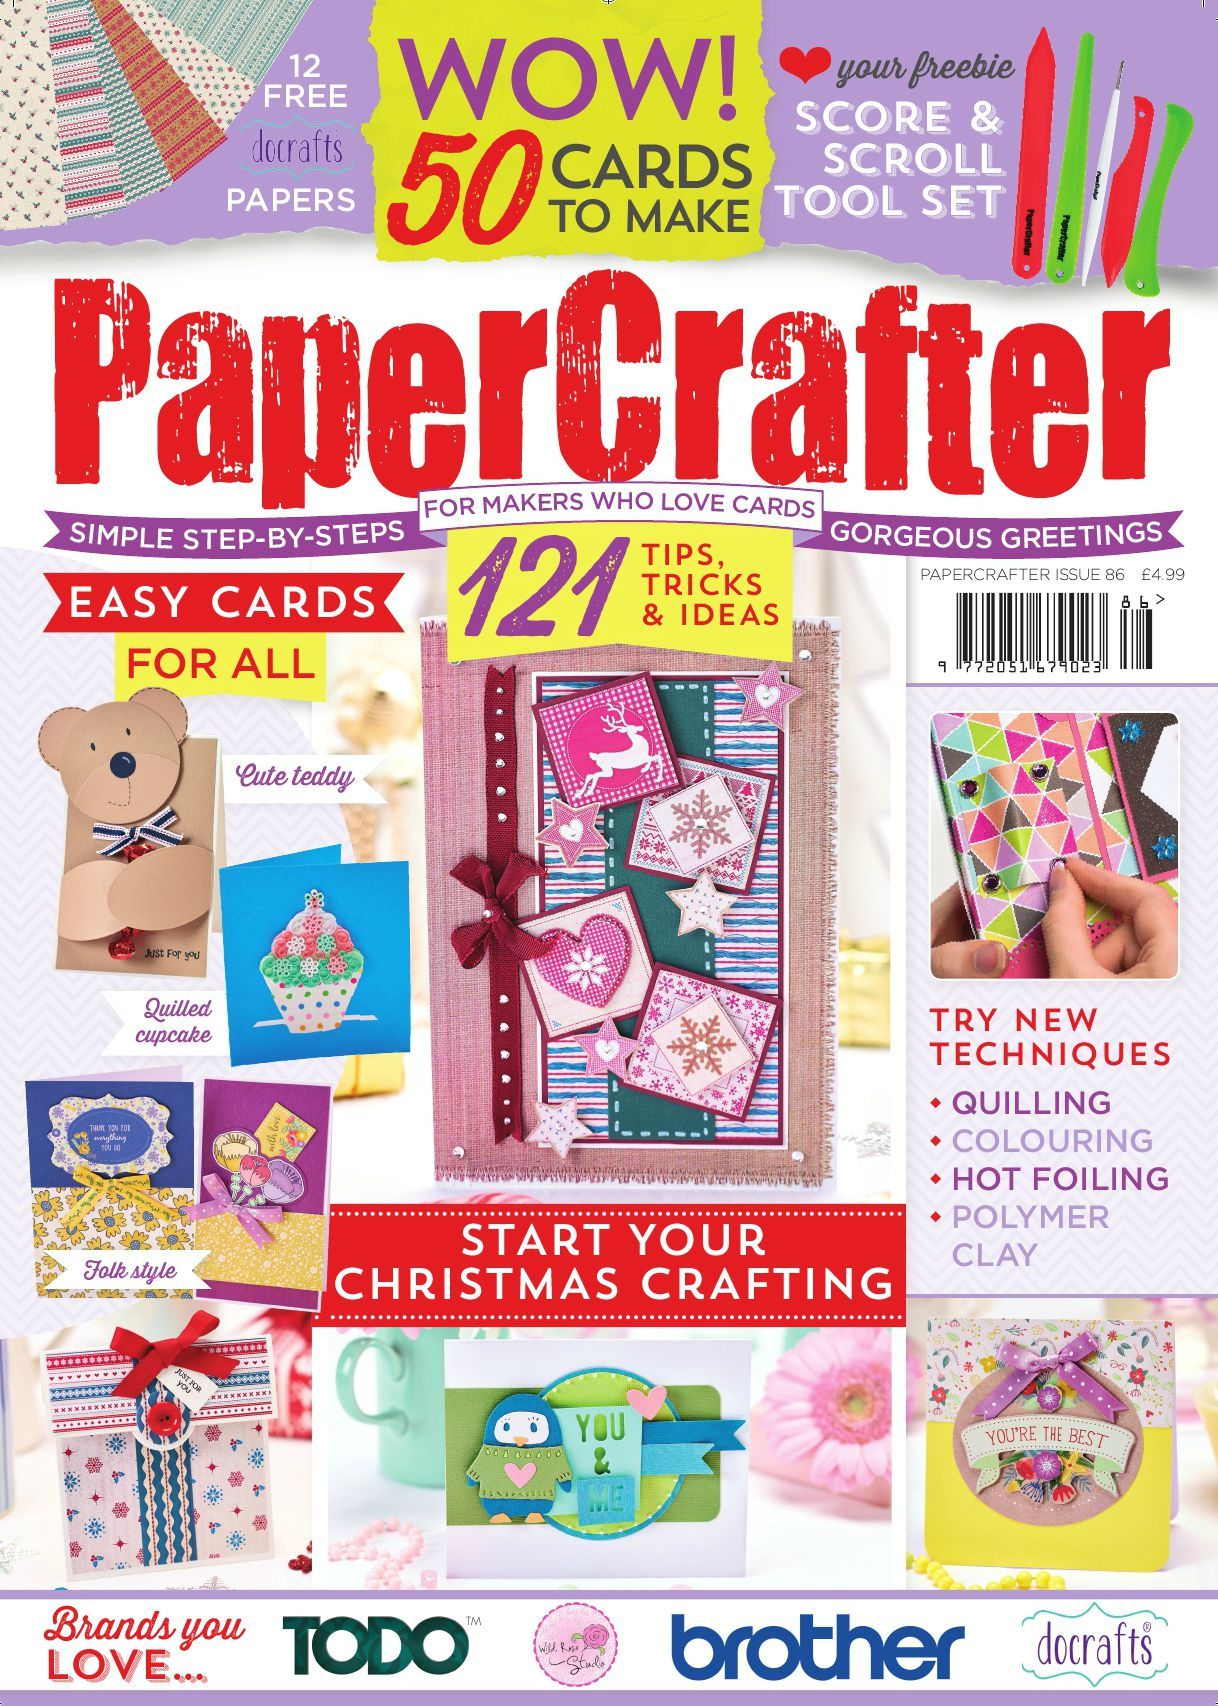 PaperCrafter issue 86